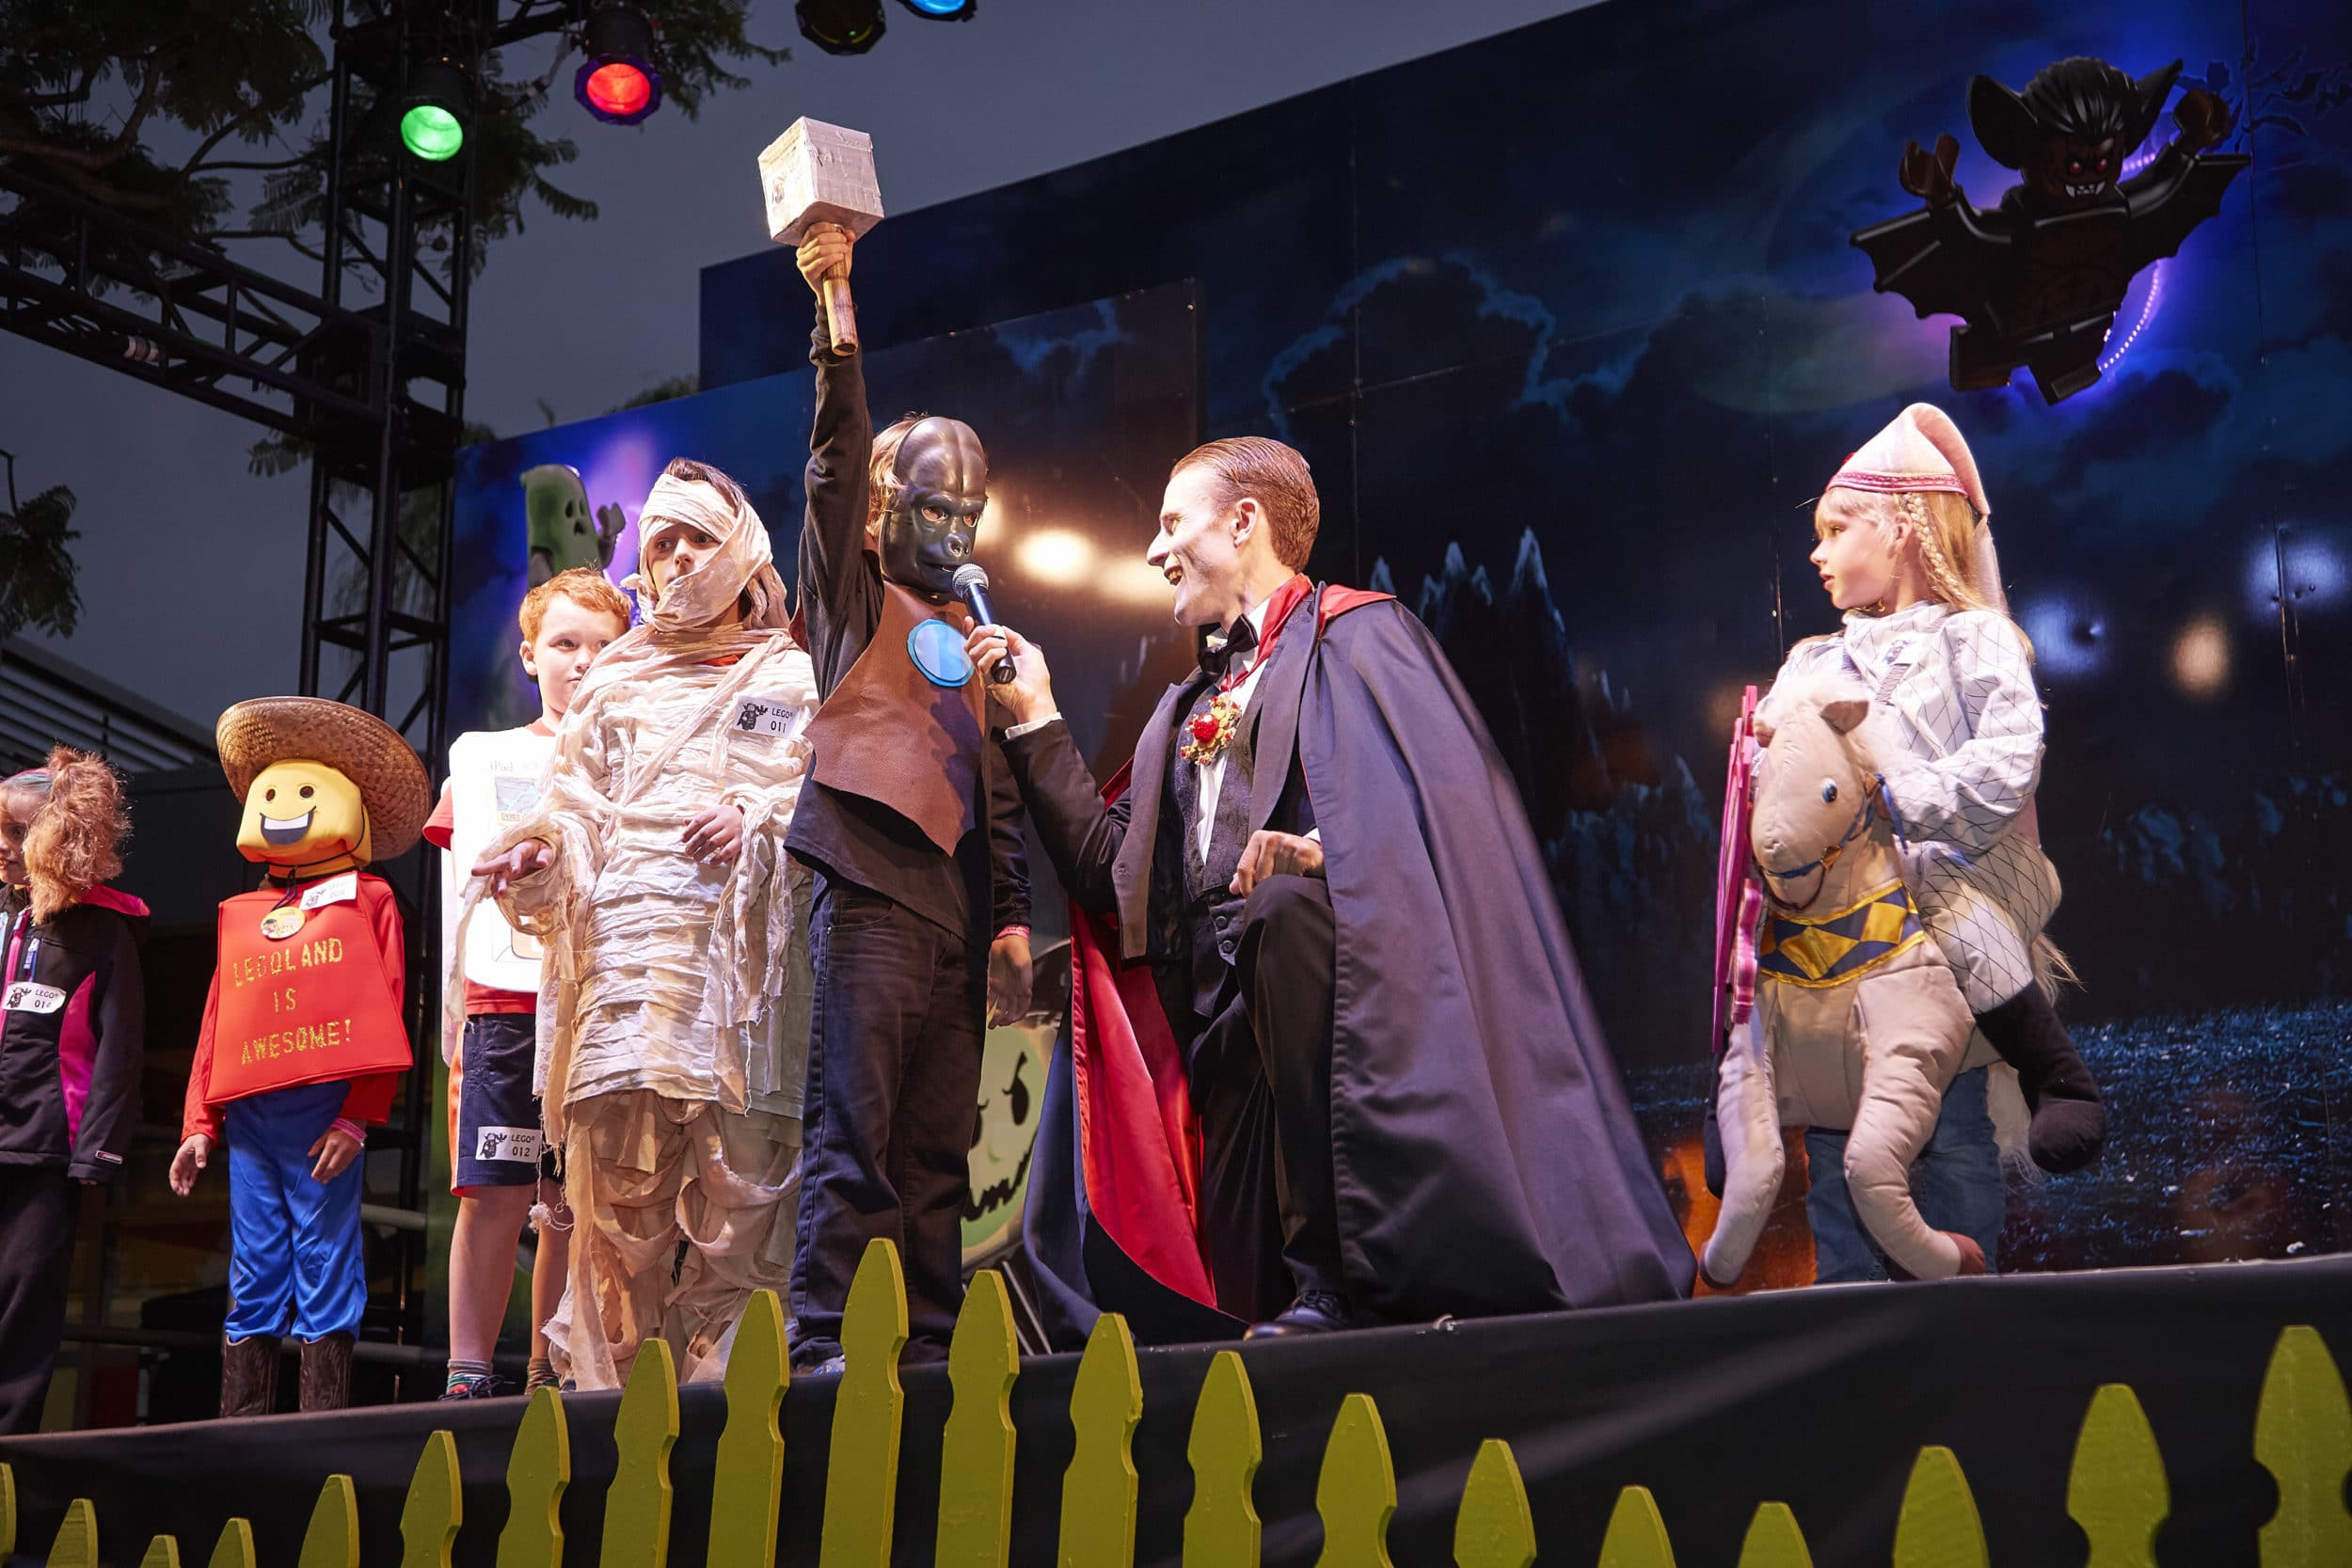 Costume contest at Legoland Brick-or-Treat Party Nights